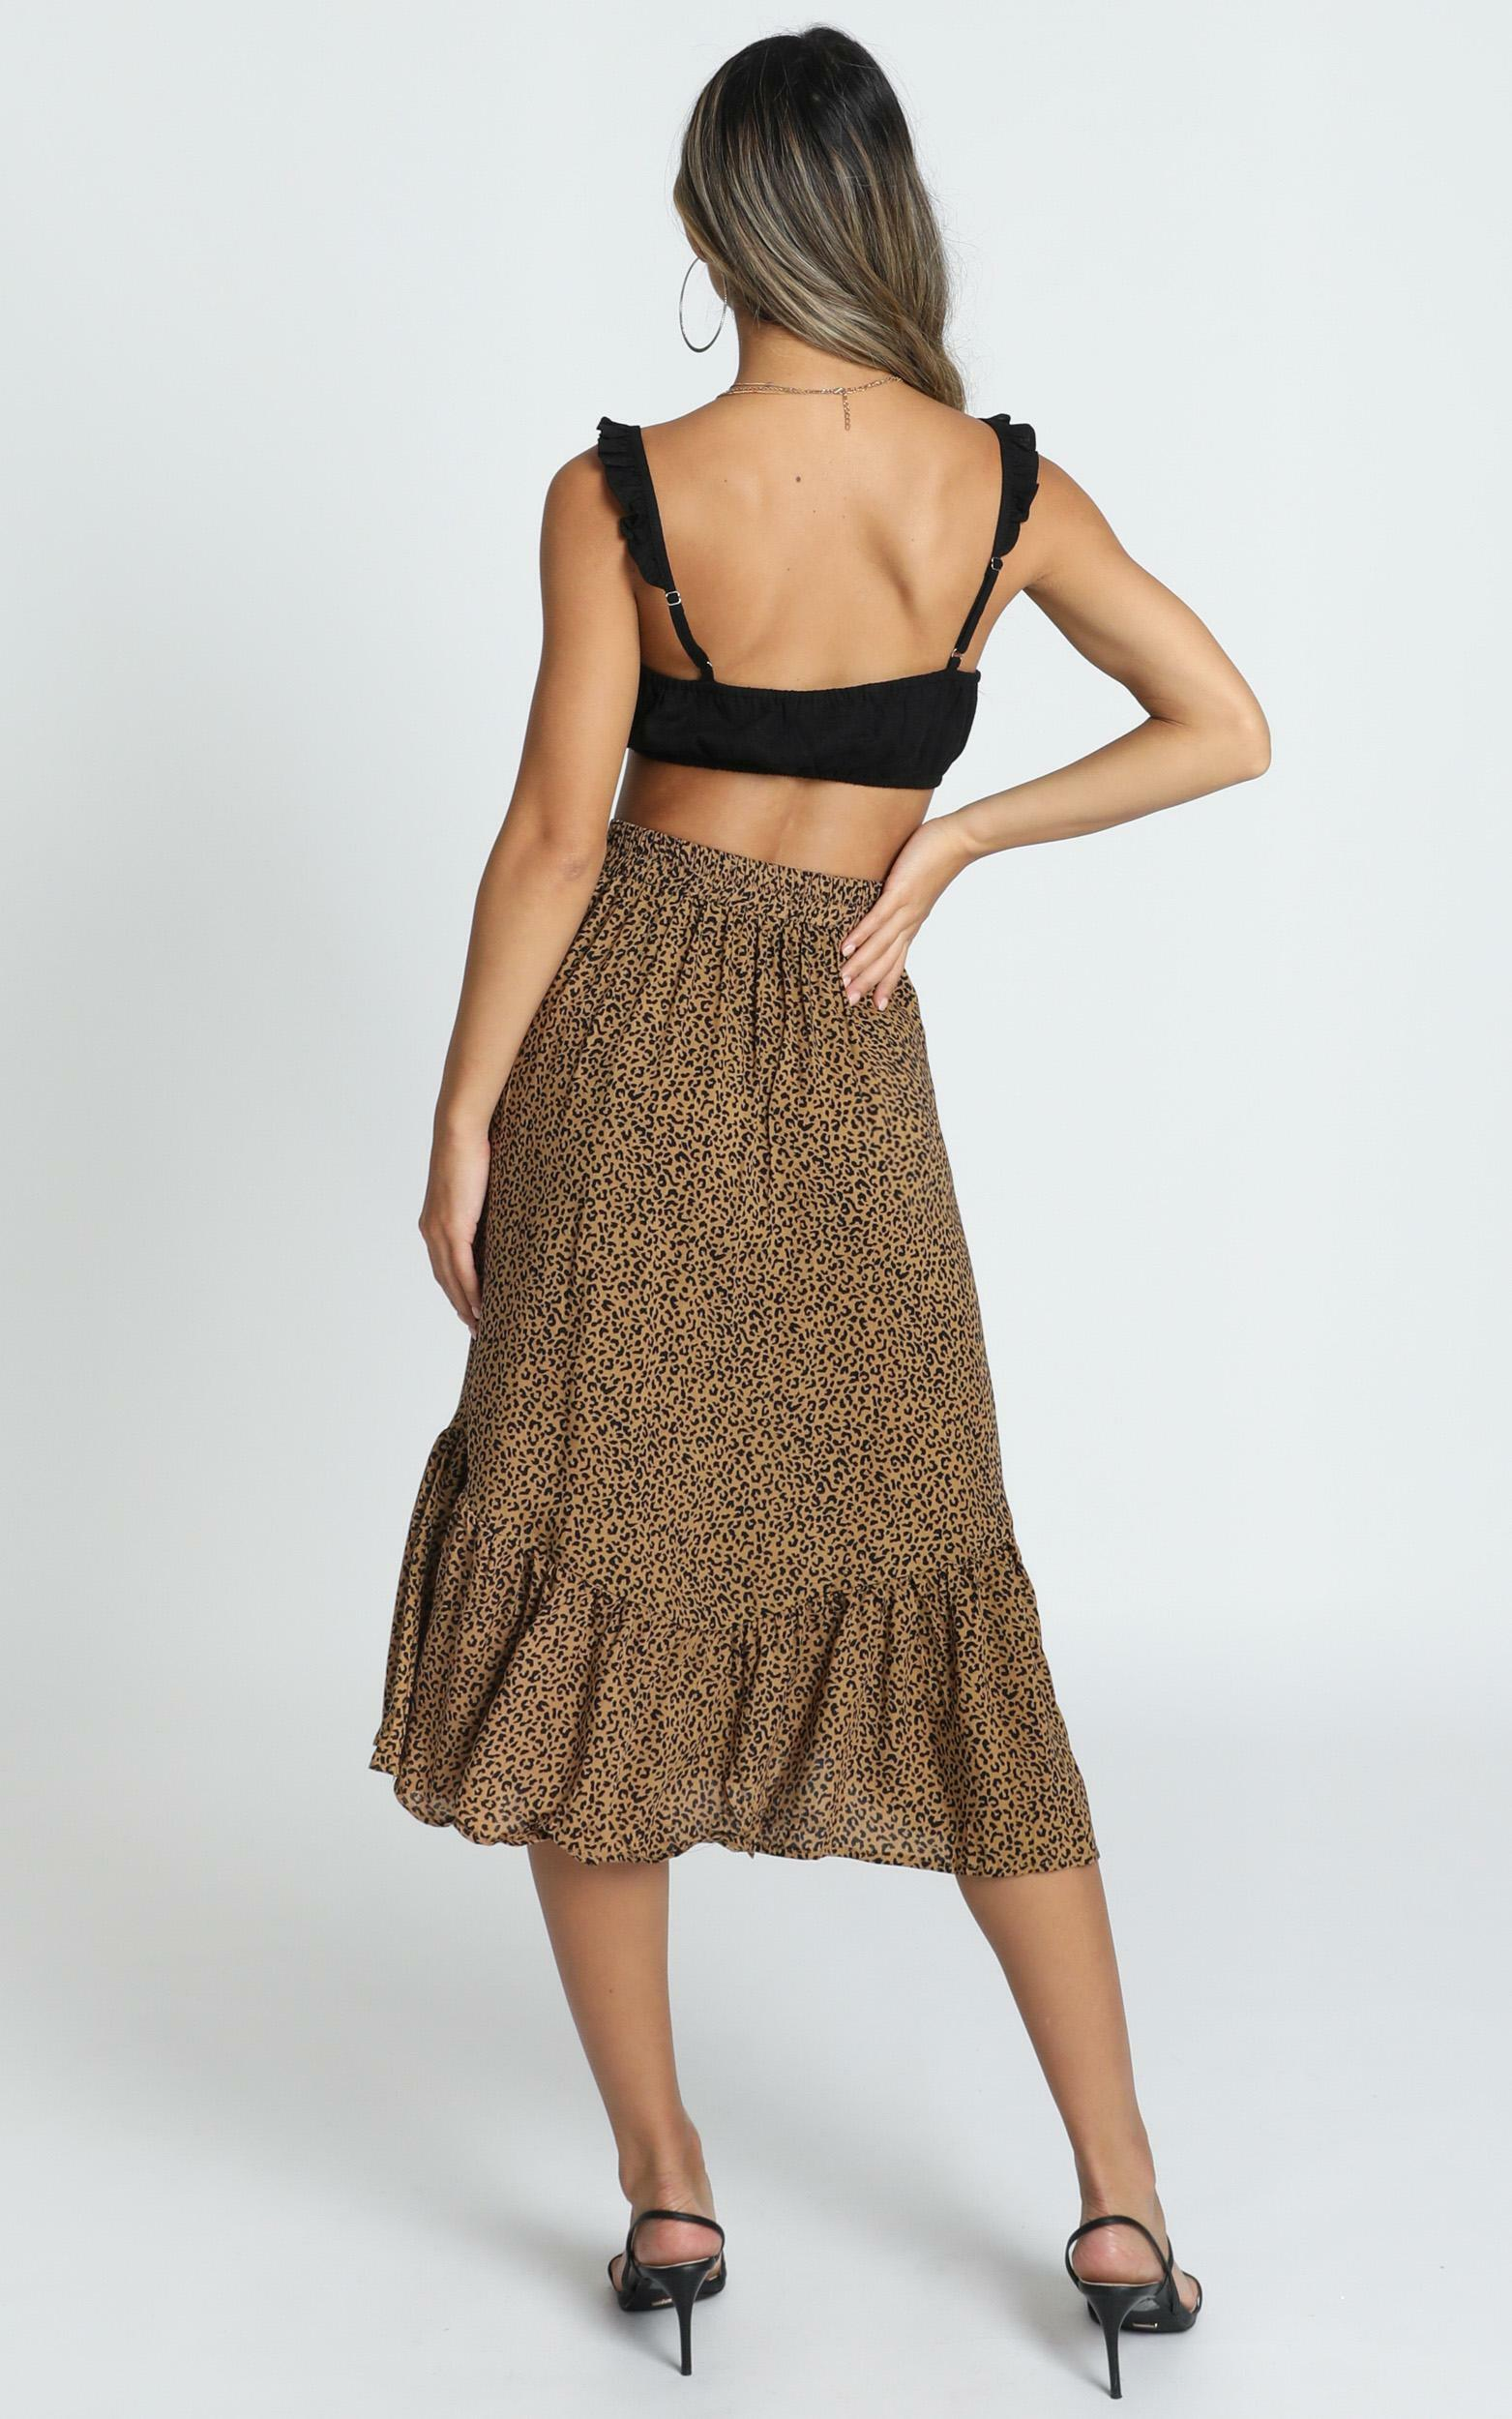 Wild Life Skirt in leopard - 14 (XL), Brown, hi-res image number null